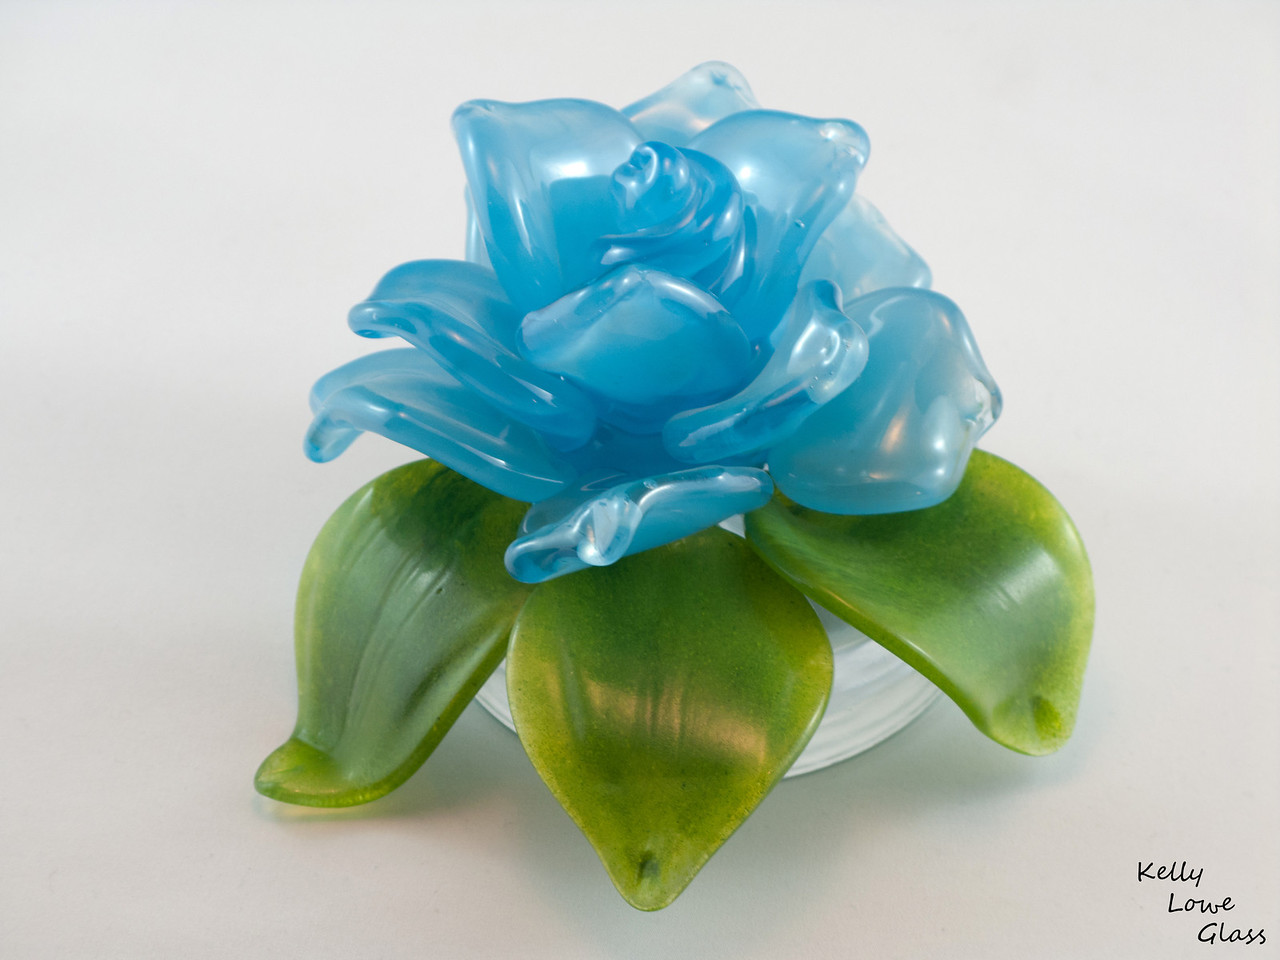 Glass flower with added sculpted glass leaves, mounted on a clear glass base.